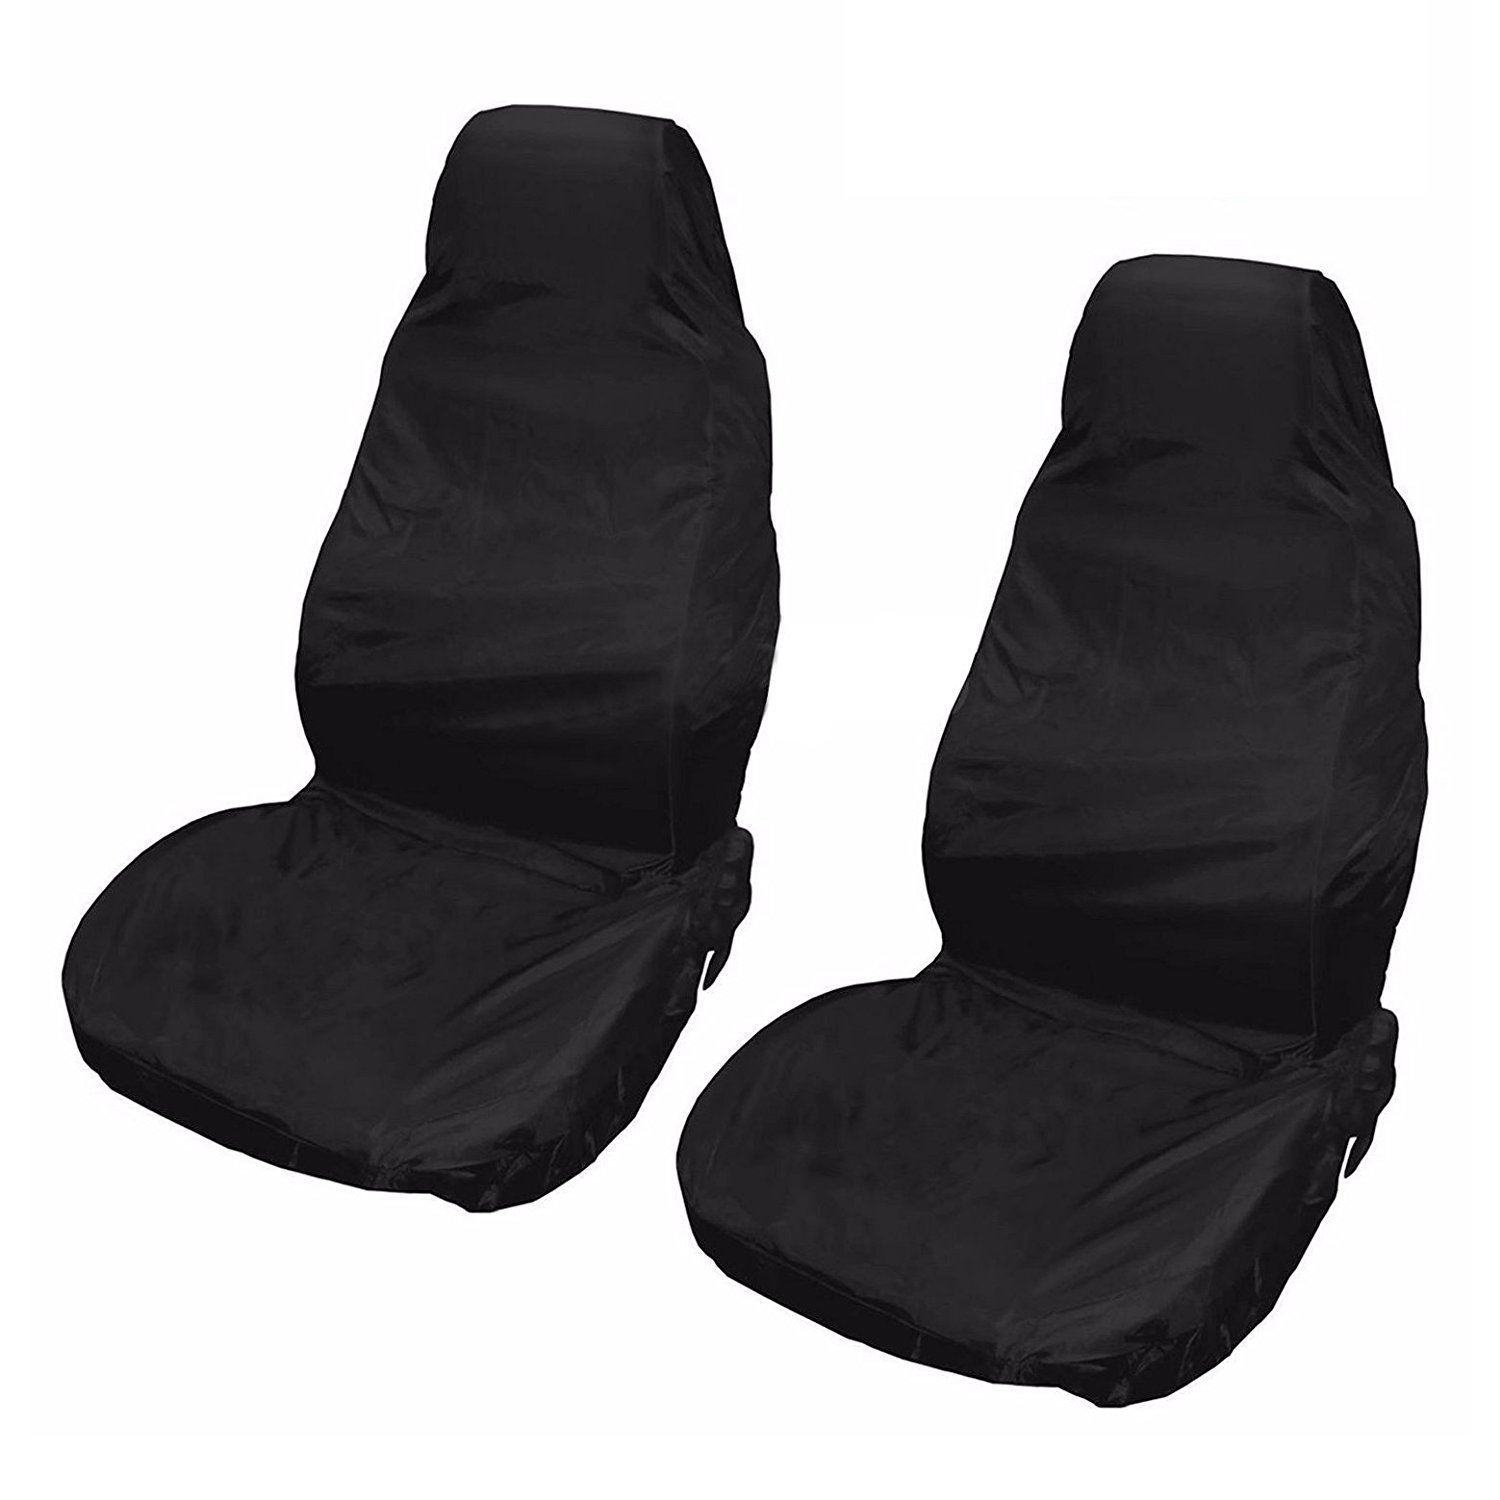 Water Resistant Front Pair of Car Seat Covers for Ford Fiesta St 12-On